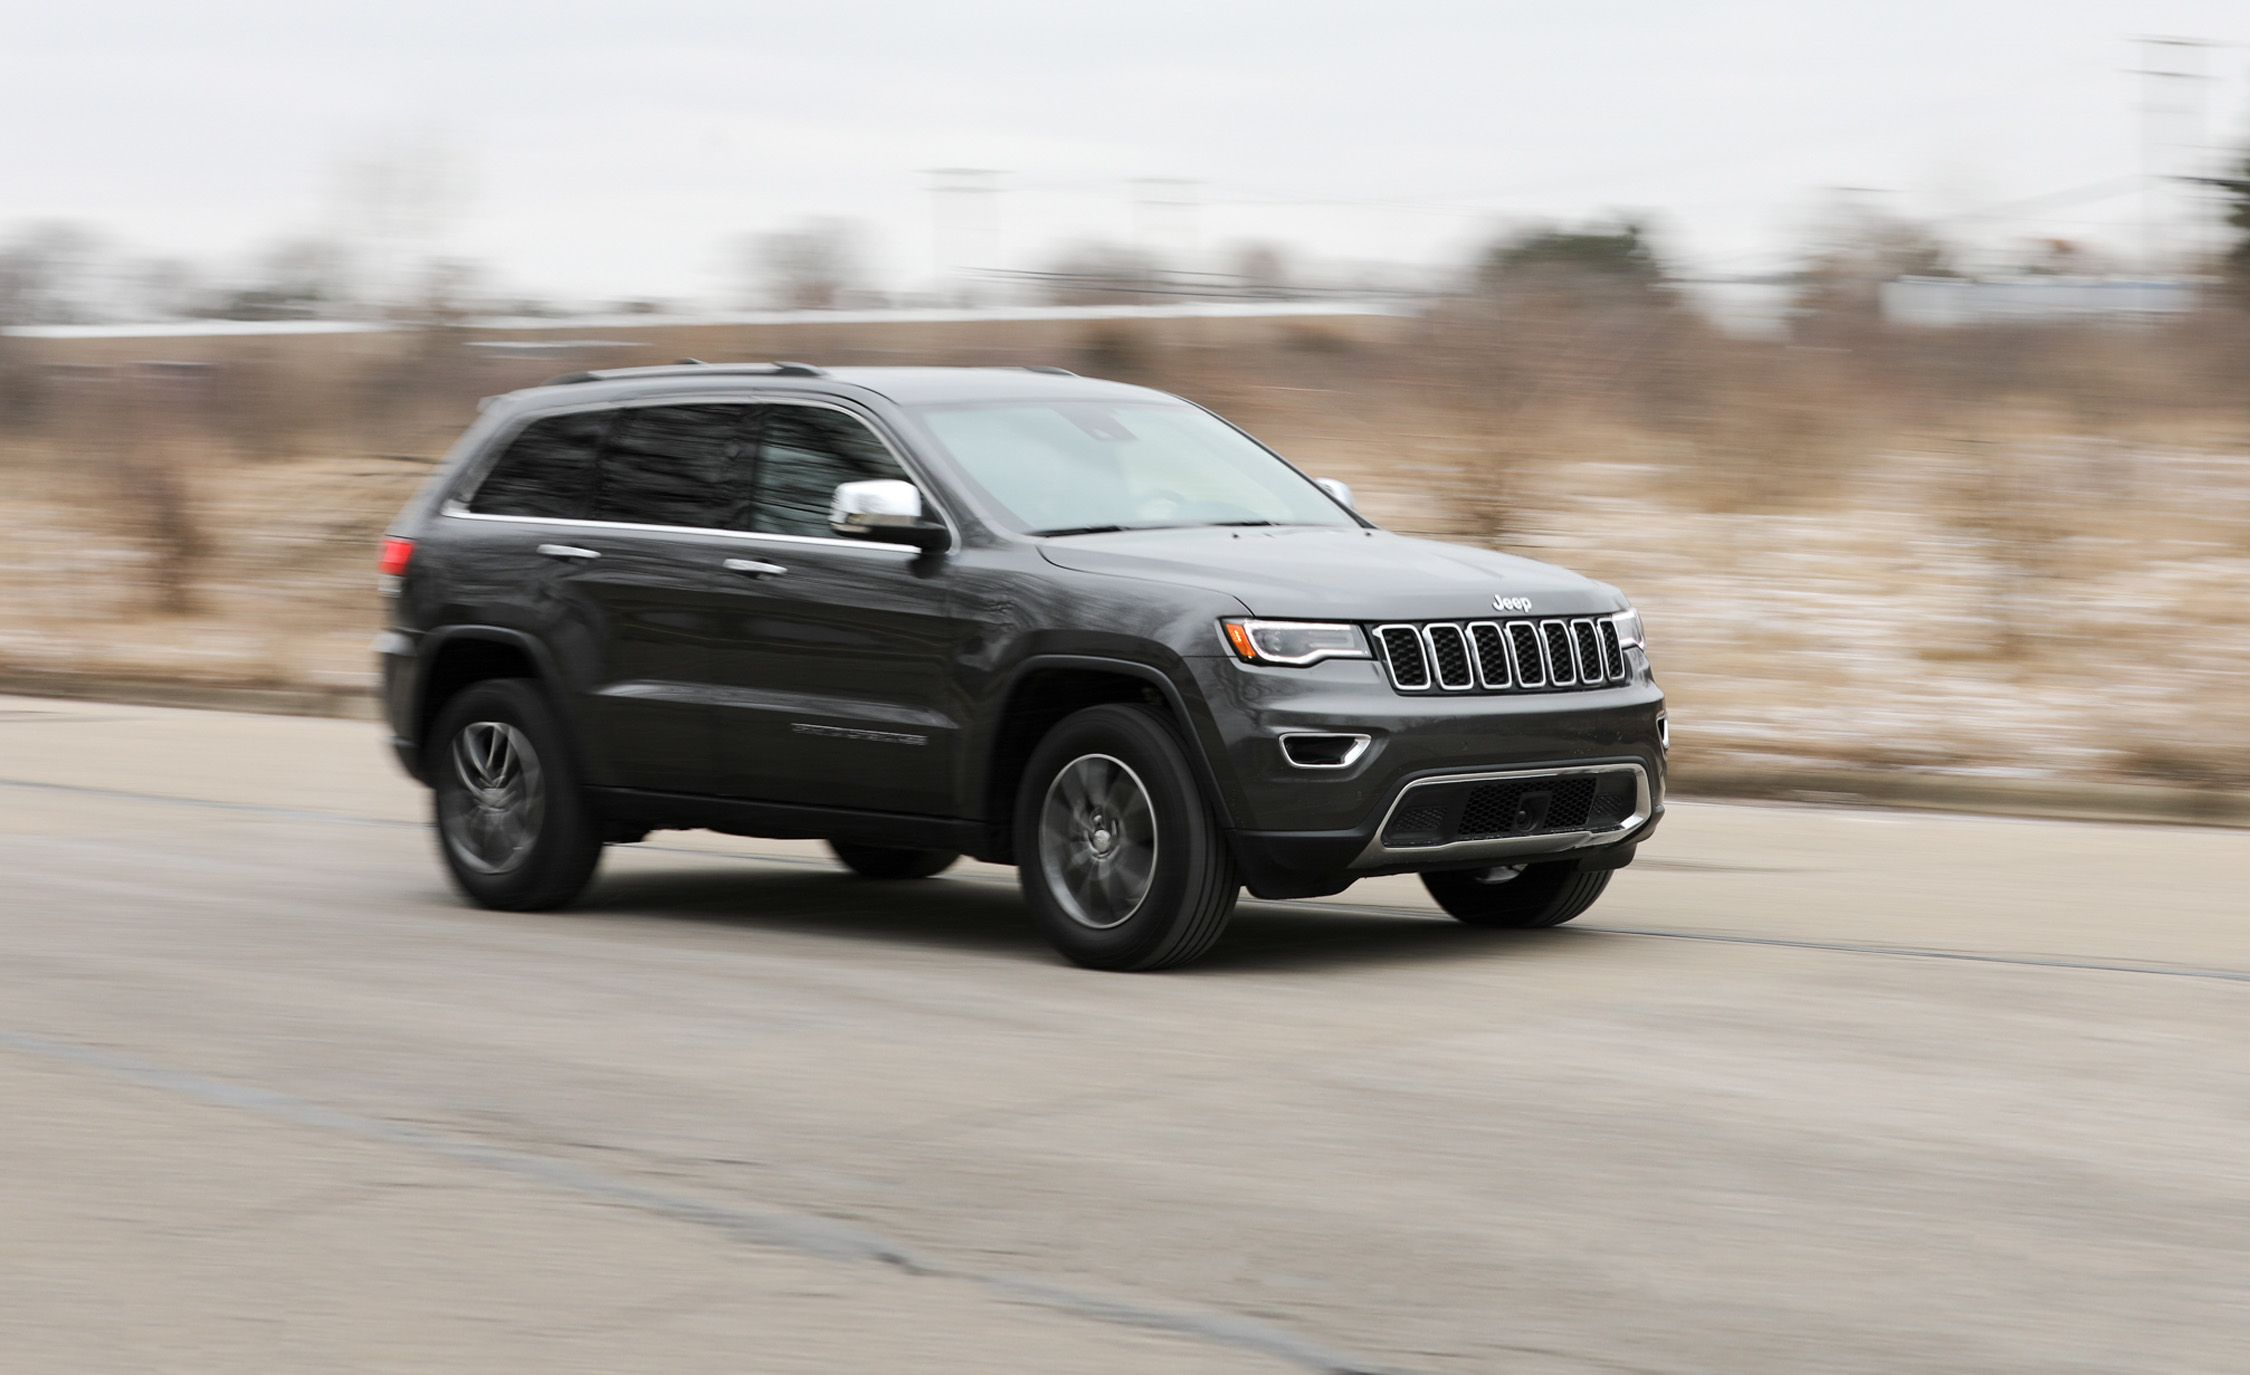 Jeep Grand Cherokee Reviews Price Photos And 2005 Lift Gate Latch Specs Car Driver